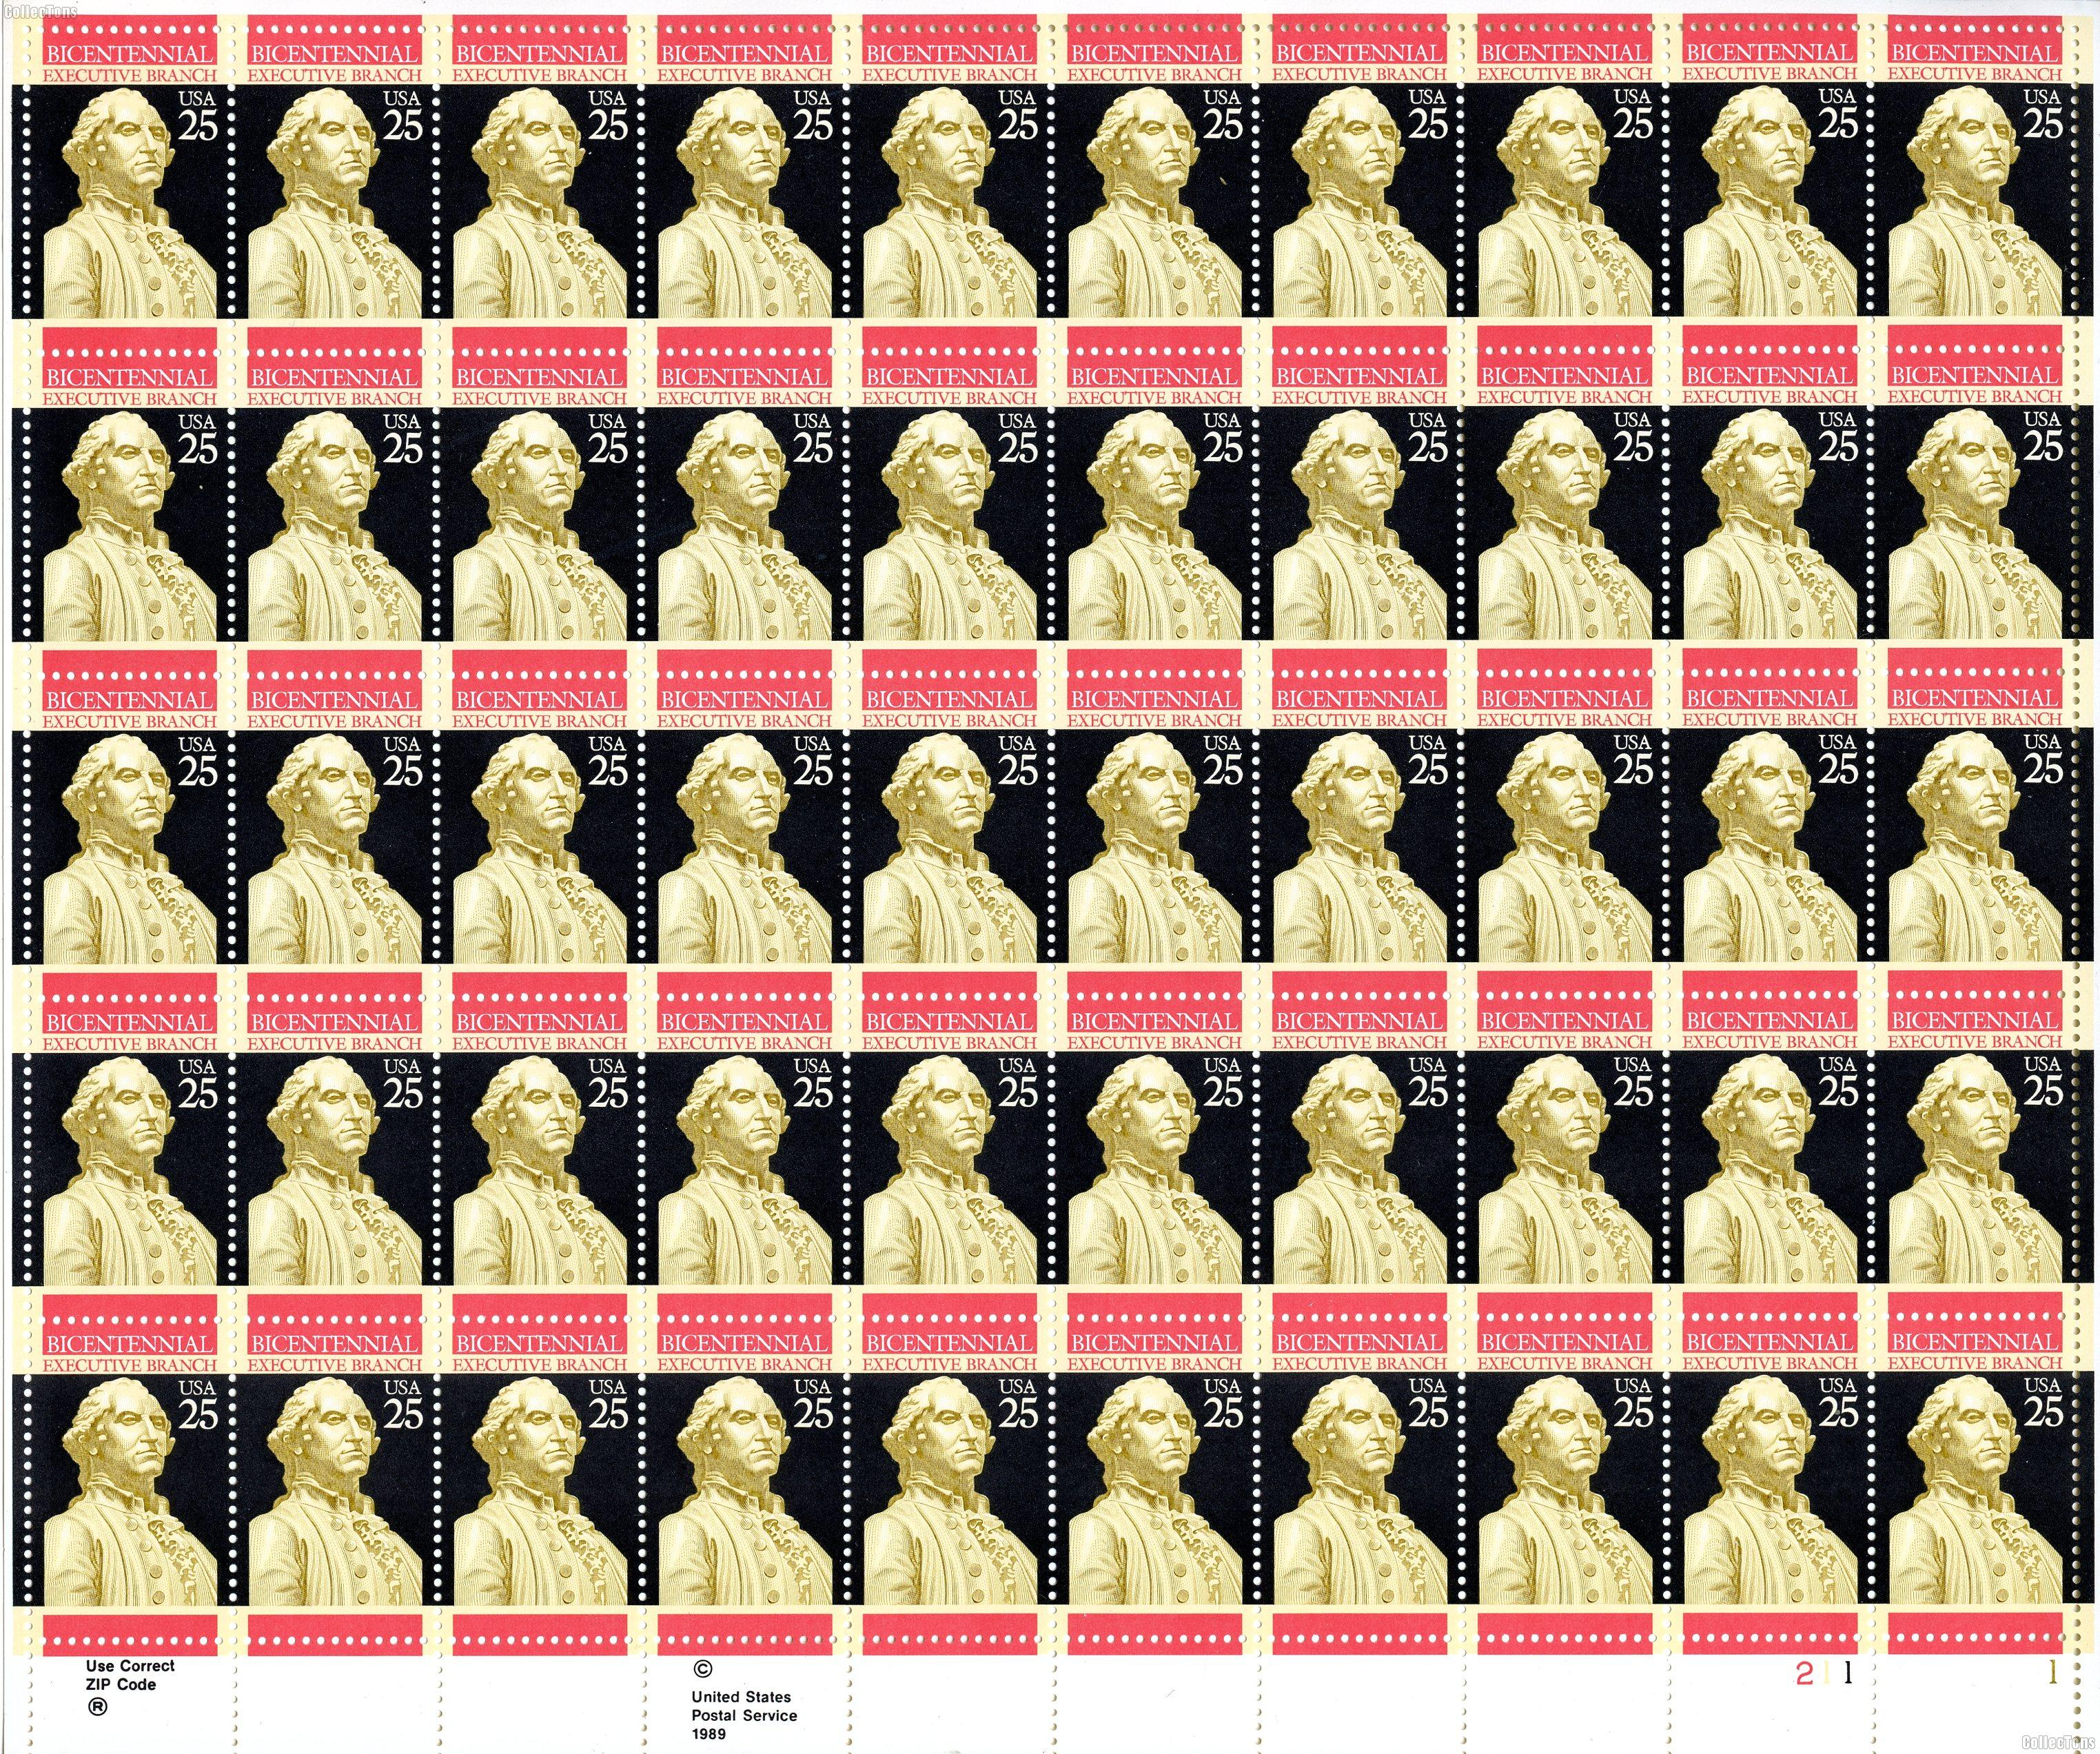 1989 Executive Branch and George Washington Memorial 25 Cent US Postage Stamp MNH Sheet of 50 Scott #2414